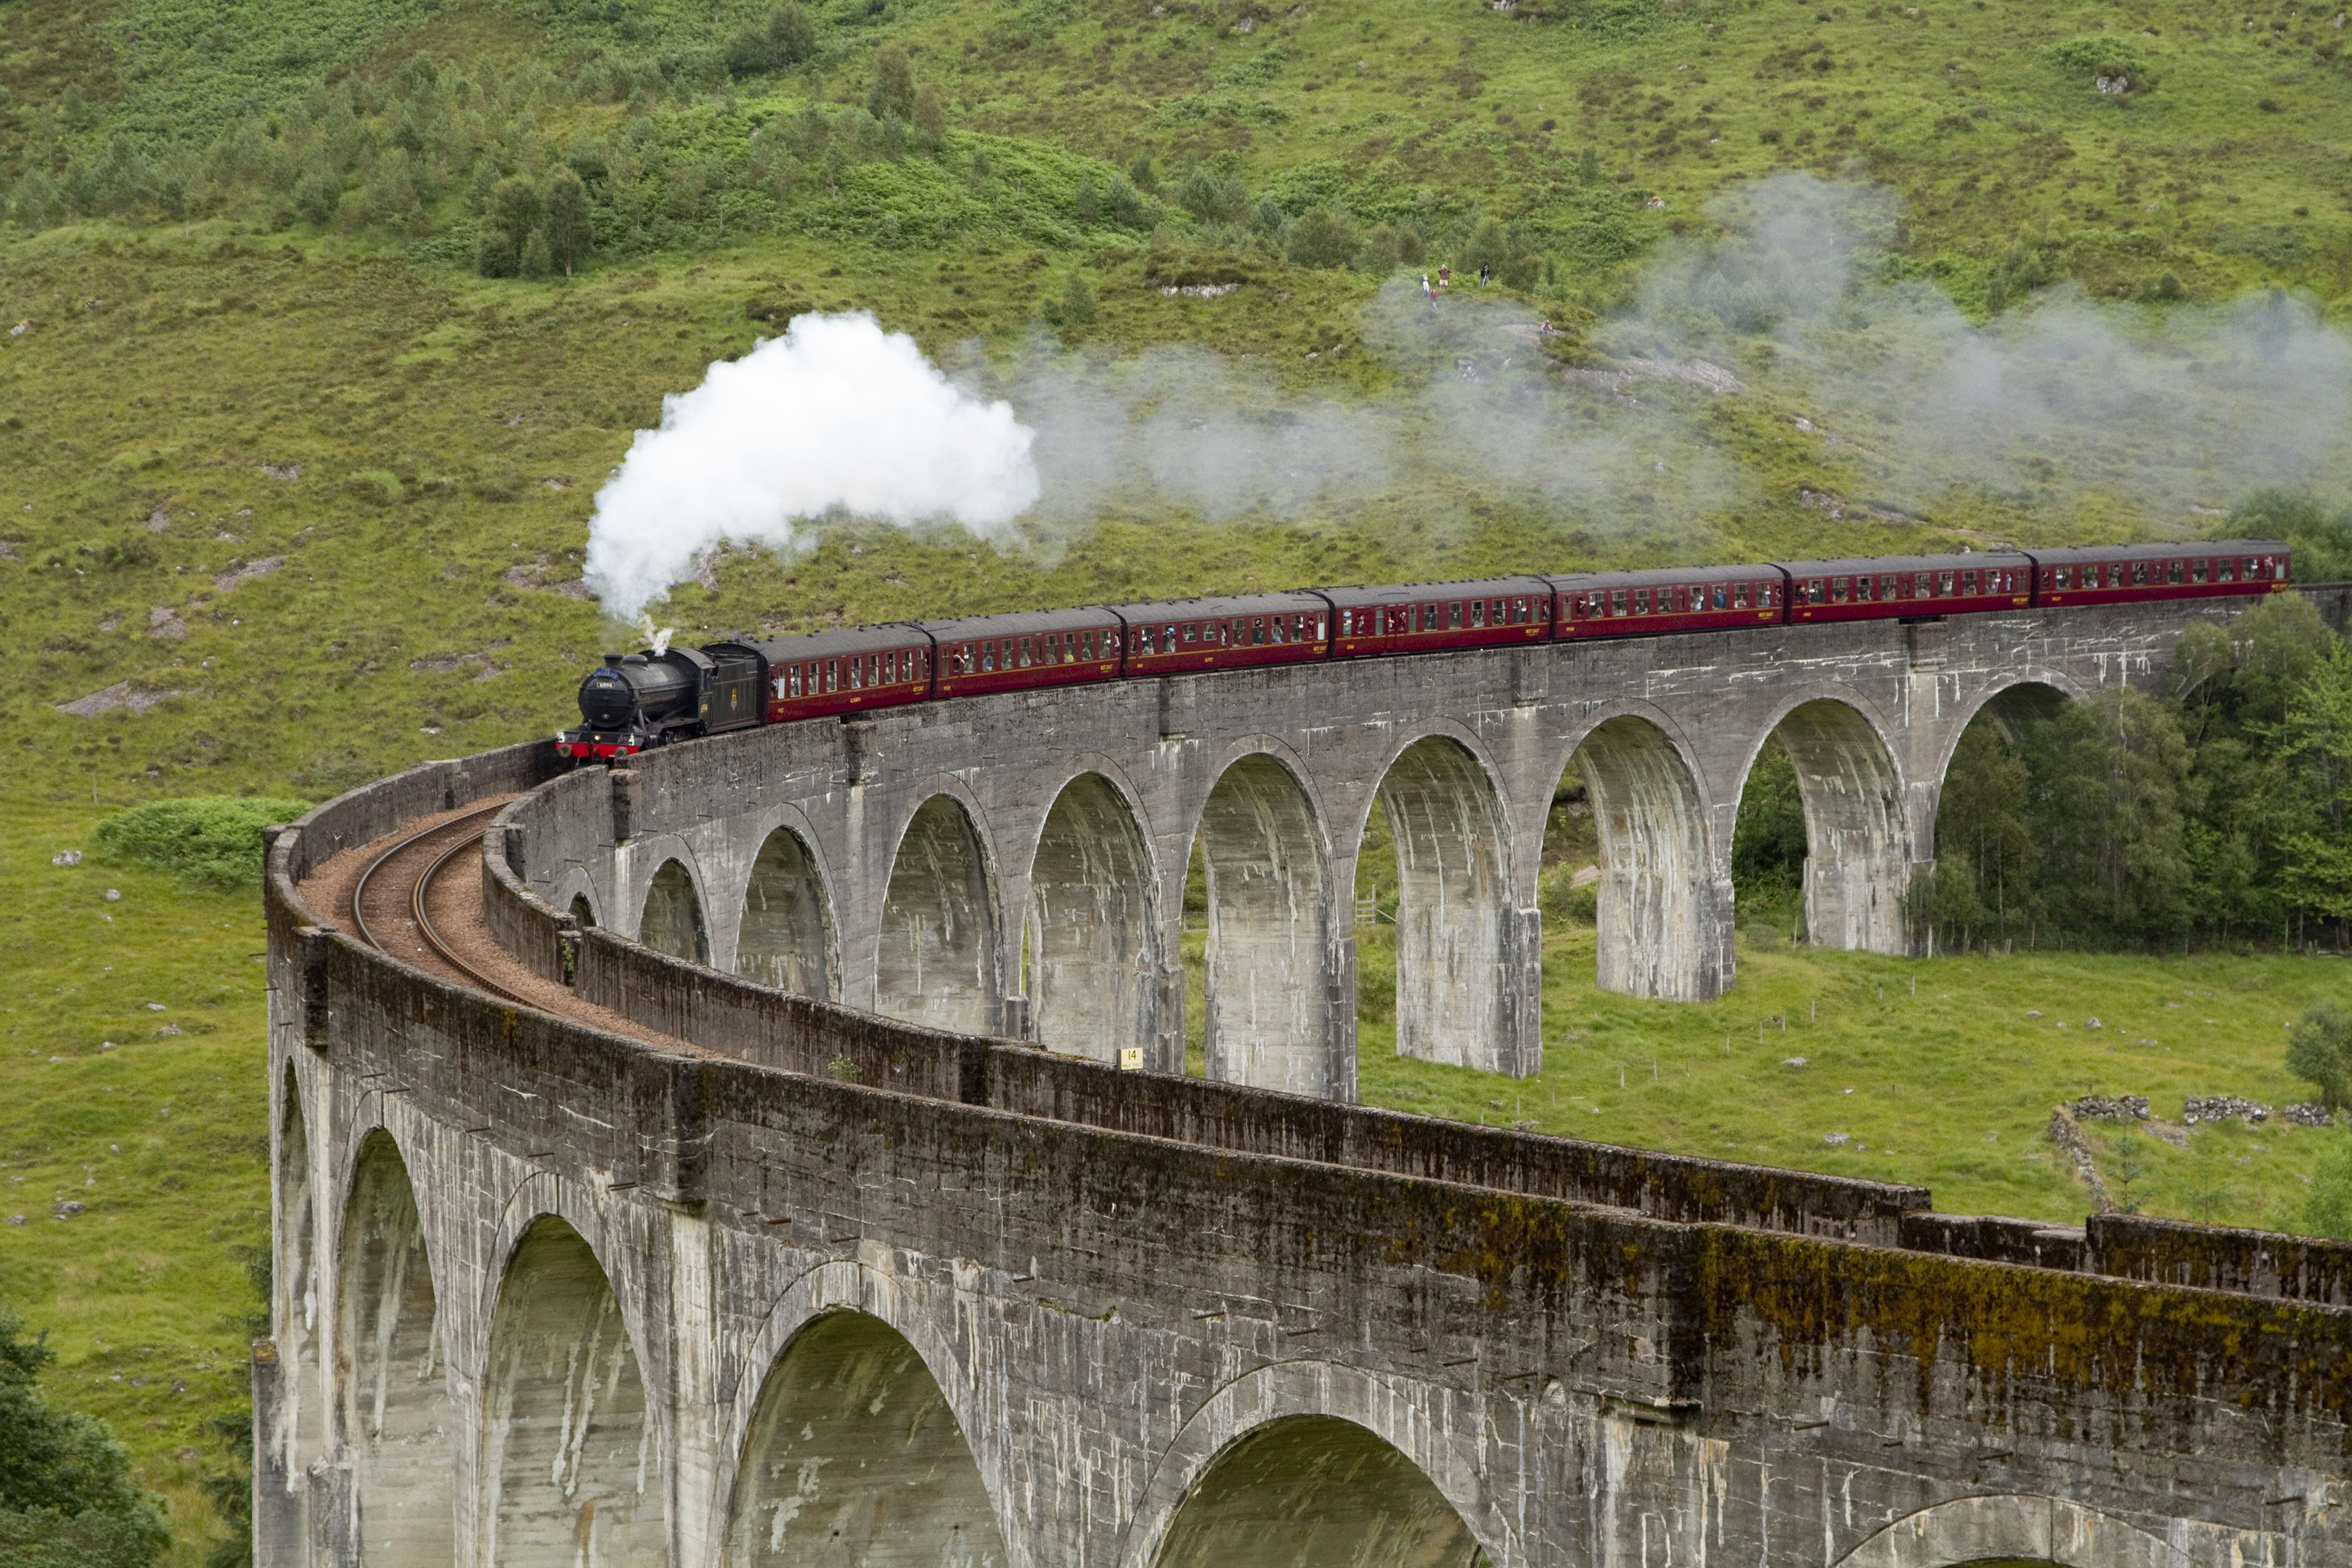 The Jacobite steam train crossing Glenfinnan Viaduct.